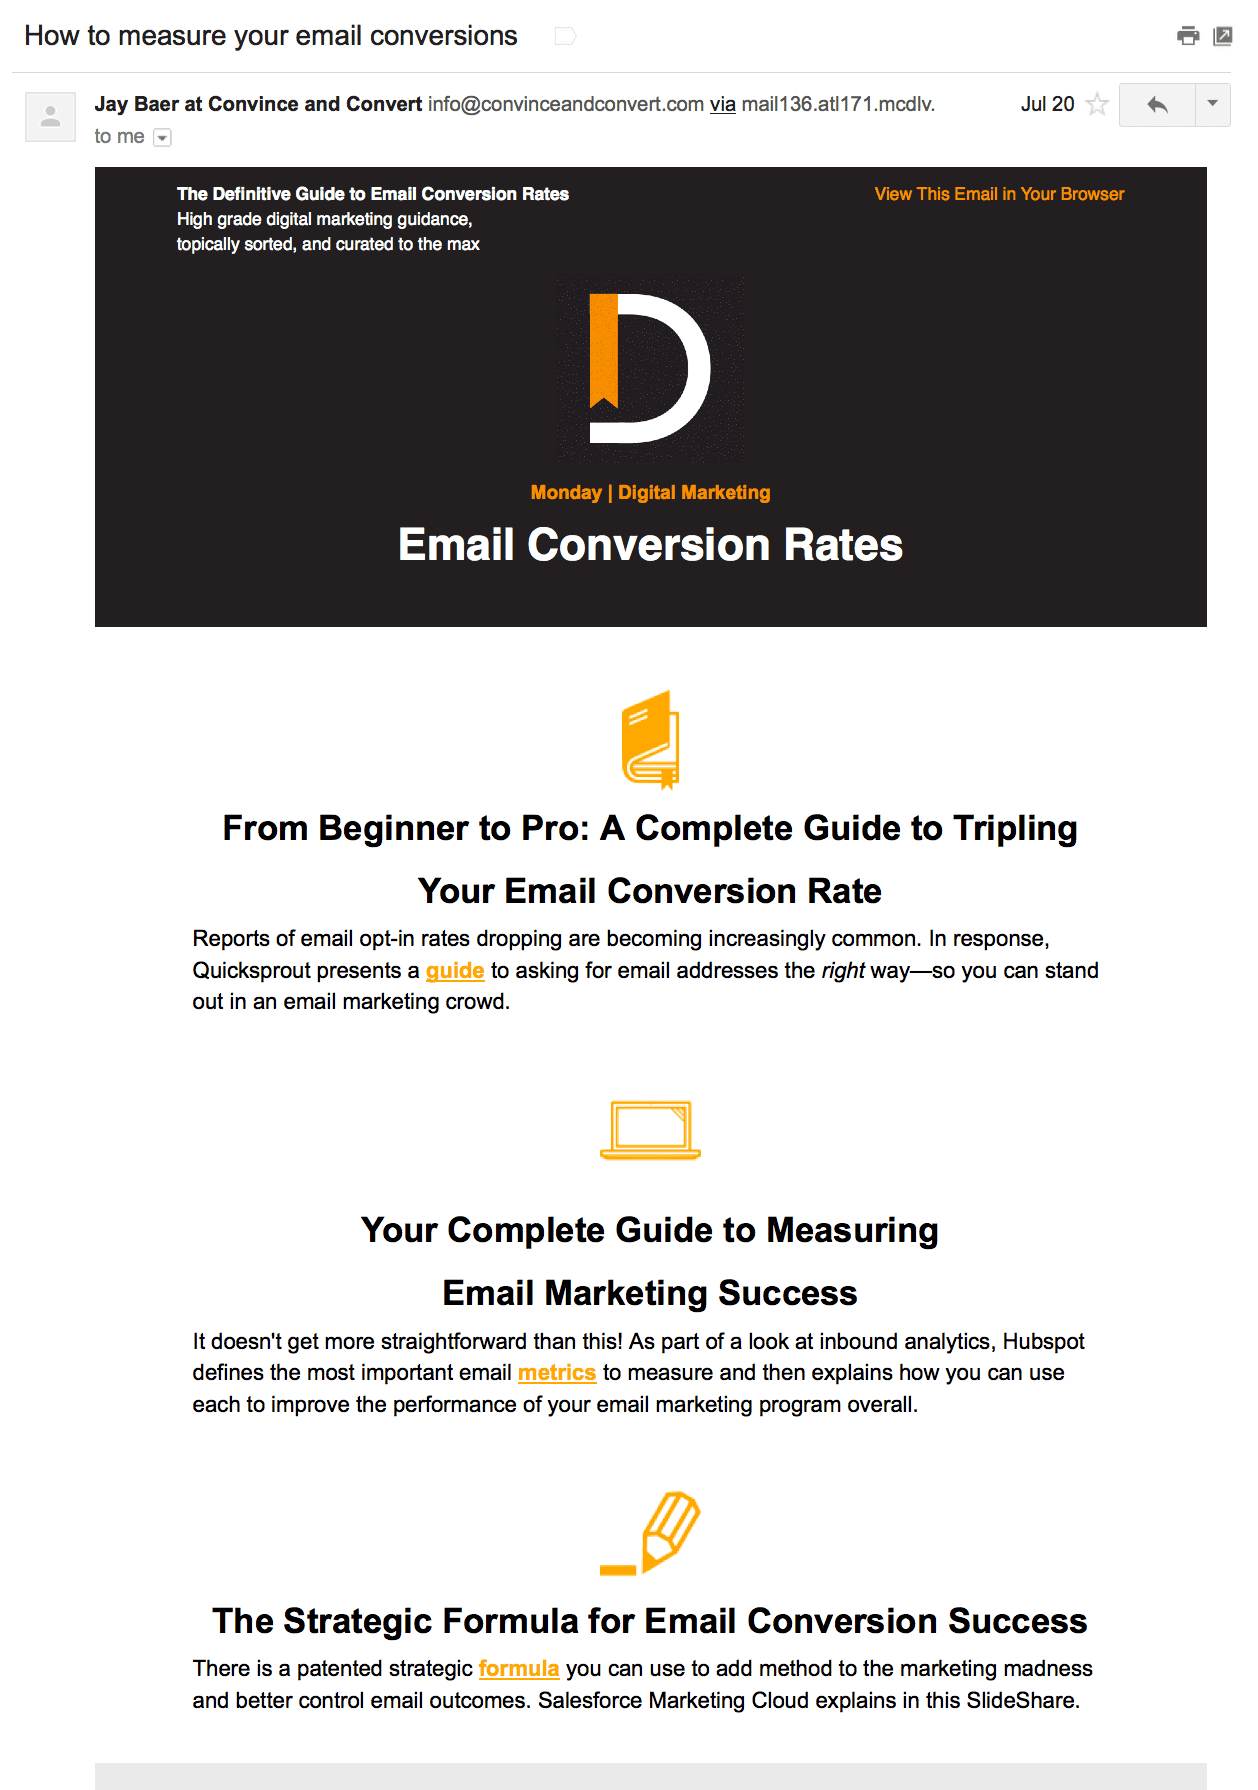 How to Get More Responses From Cold Emails - Single Grain